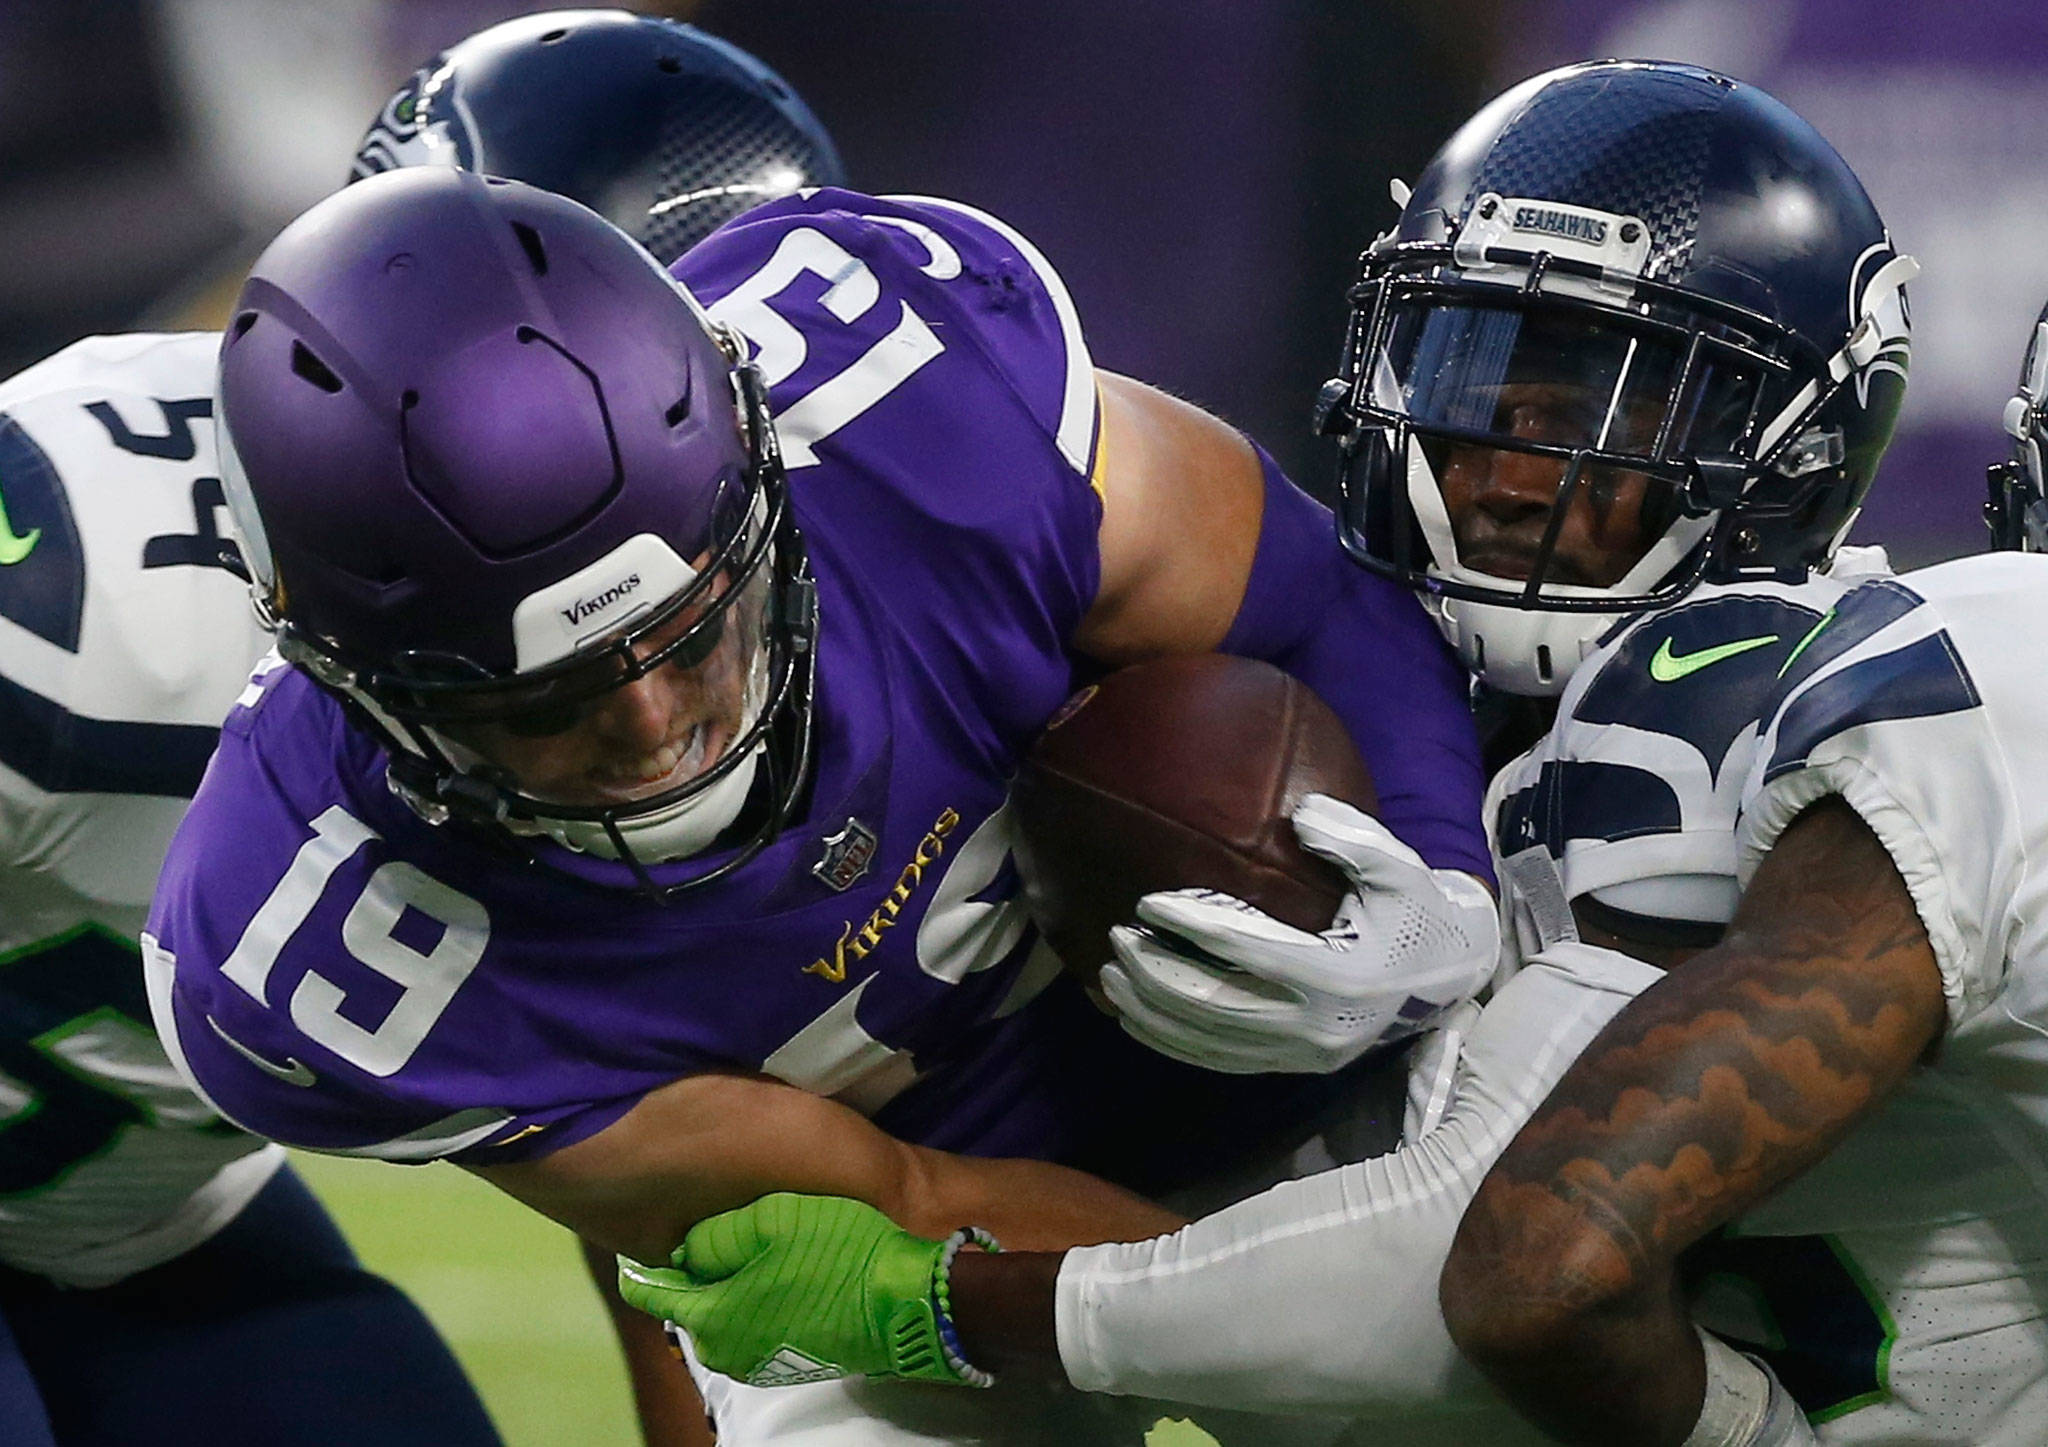 Vikings wide receiver Adam Thielen (19) is tackled by Seahawks cornerback Justin Coleman (right) after making a reception during the first half of a preseason game on Aug. 24, 2018, in Minneapolis. (AP Photo/Jim Mone)